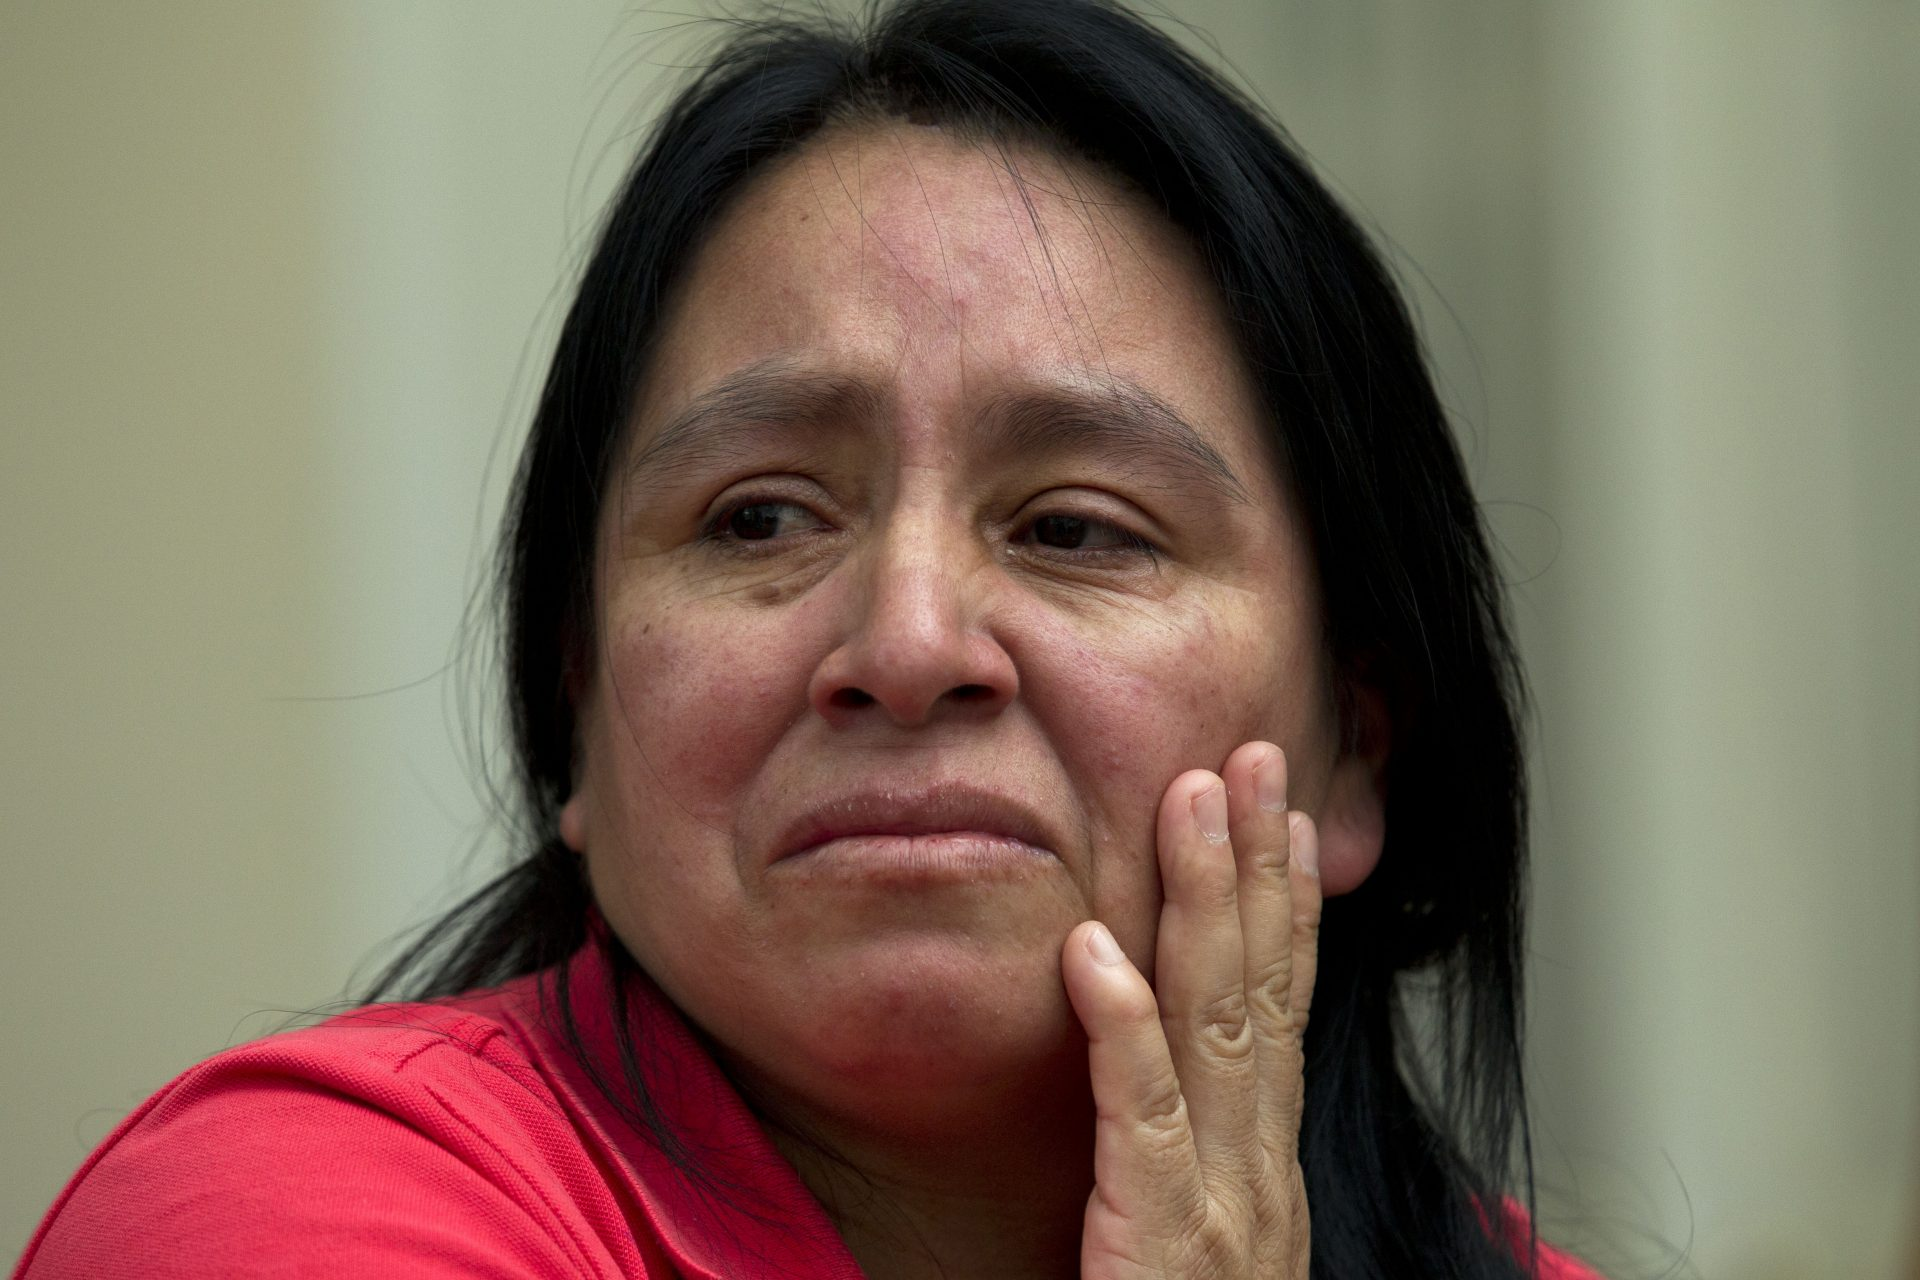 FILE PHOTO: In a Wednesday, July 17, 2019 file photo, Maria Chavalan-Sut of Guatemala, one of a number of immigrants taking sanctuary at houses of worship, speaks during an interview at the Wesley Memorial United Methodist Church in Charlottesville, Va.